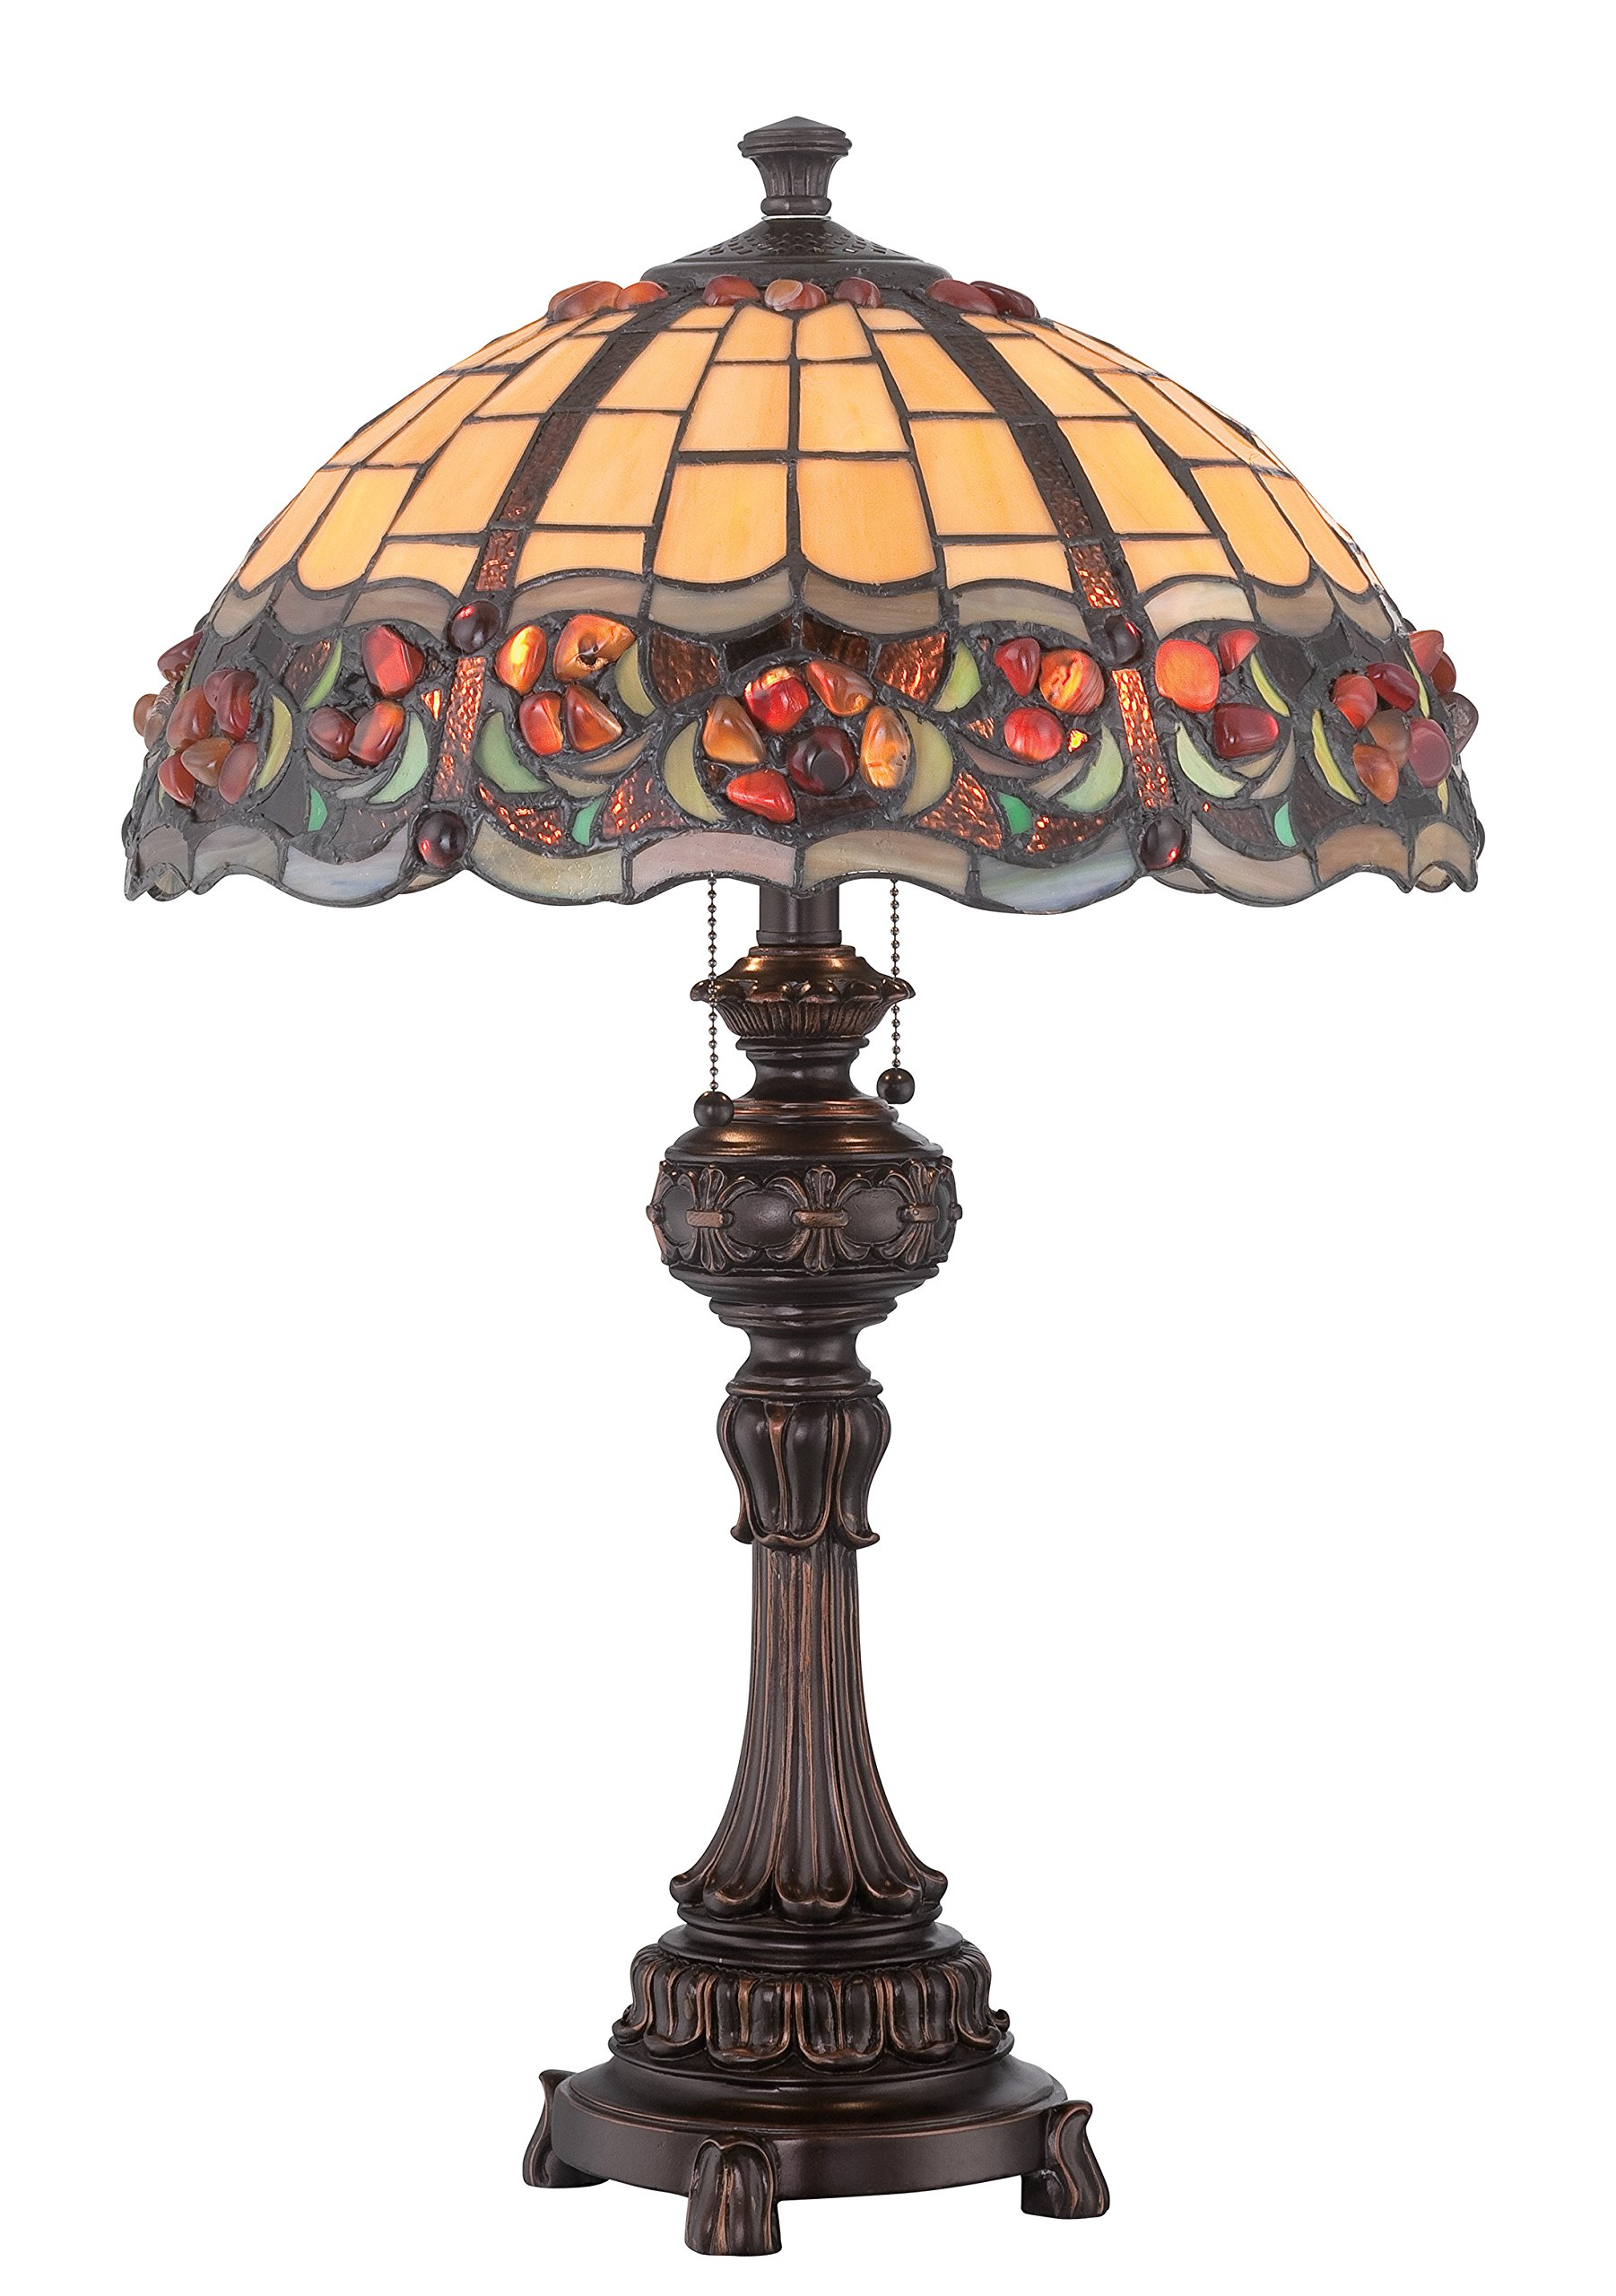 Lite Source C41341 Deana Table Lamp Deana Table Lamp, 25'' x 16'' x 16'', Dark Bronze